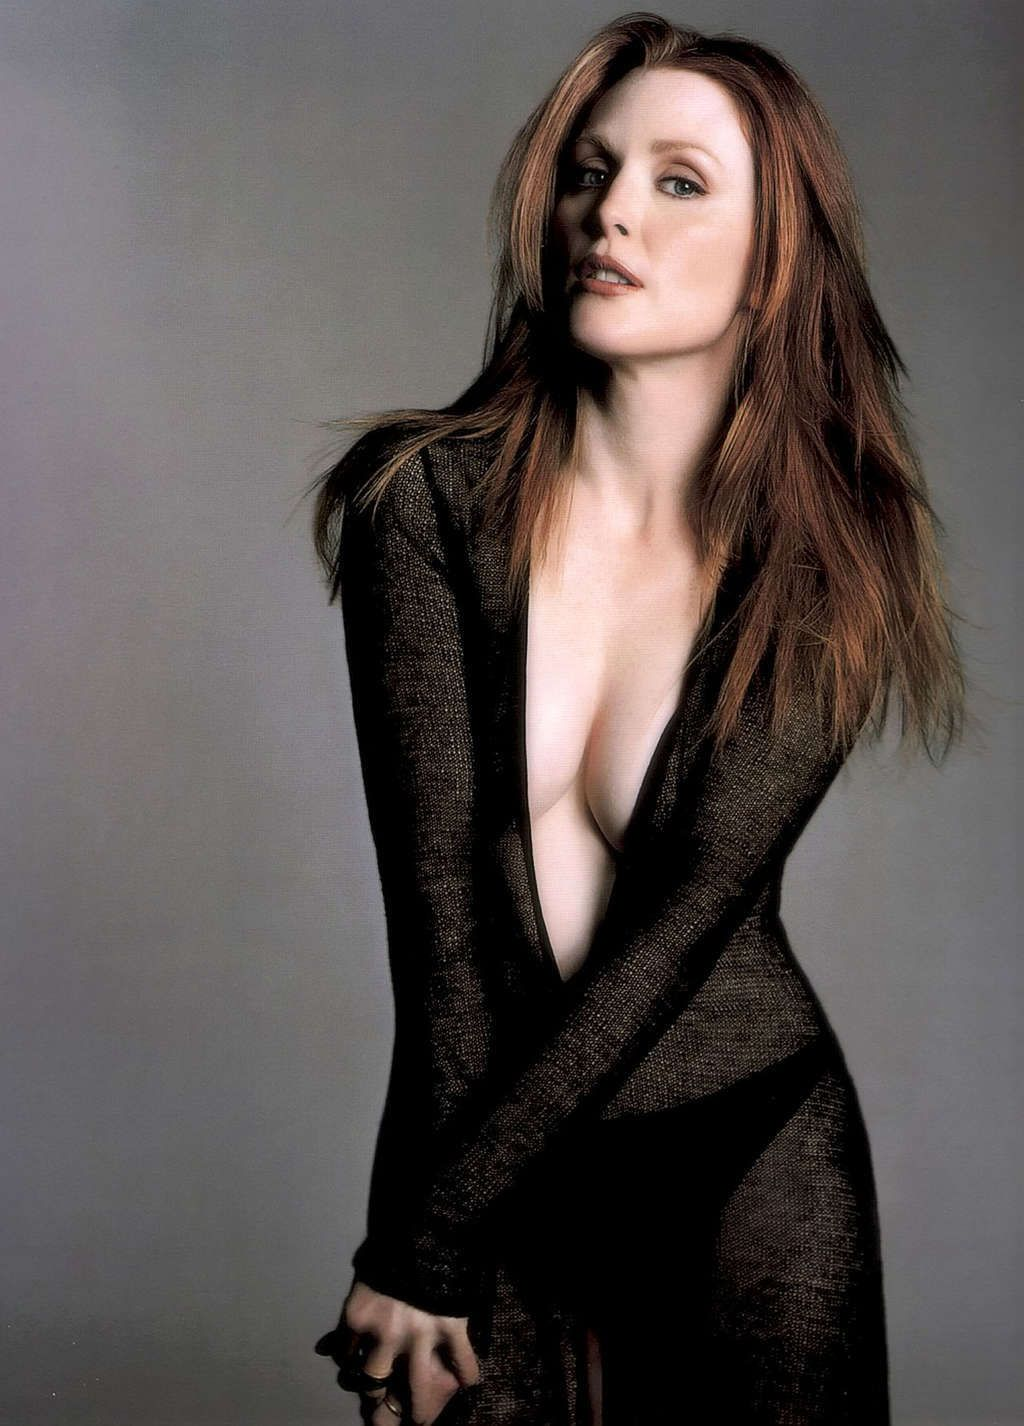 julianne moore oops | julianne moore showing her great ass and pubic